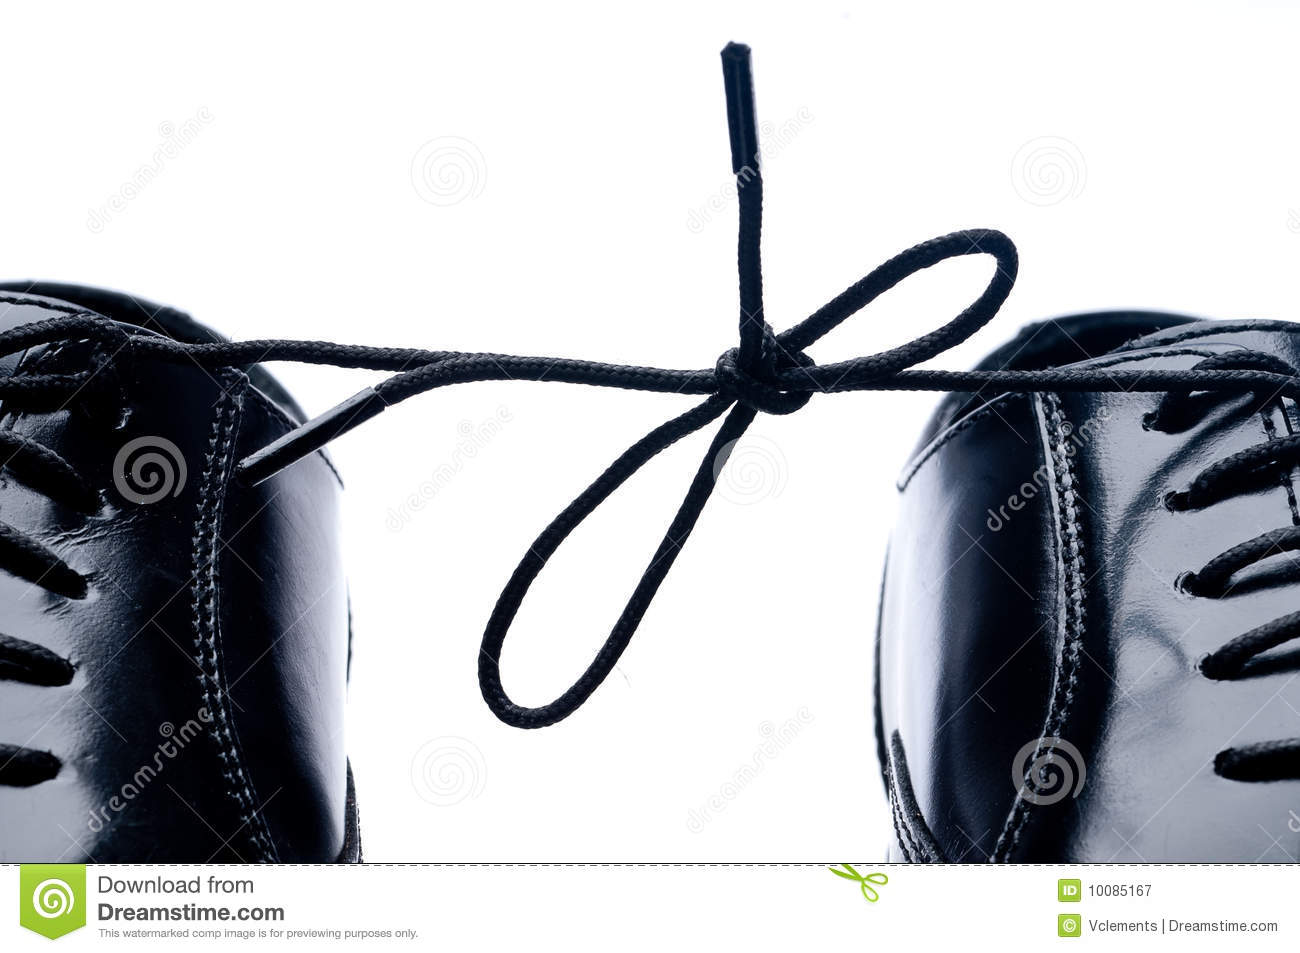 Horizontal close up of a pair of black leather business shoes with